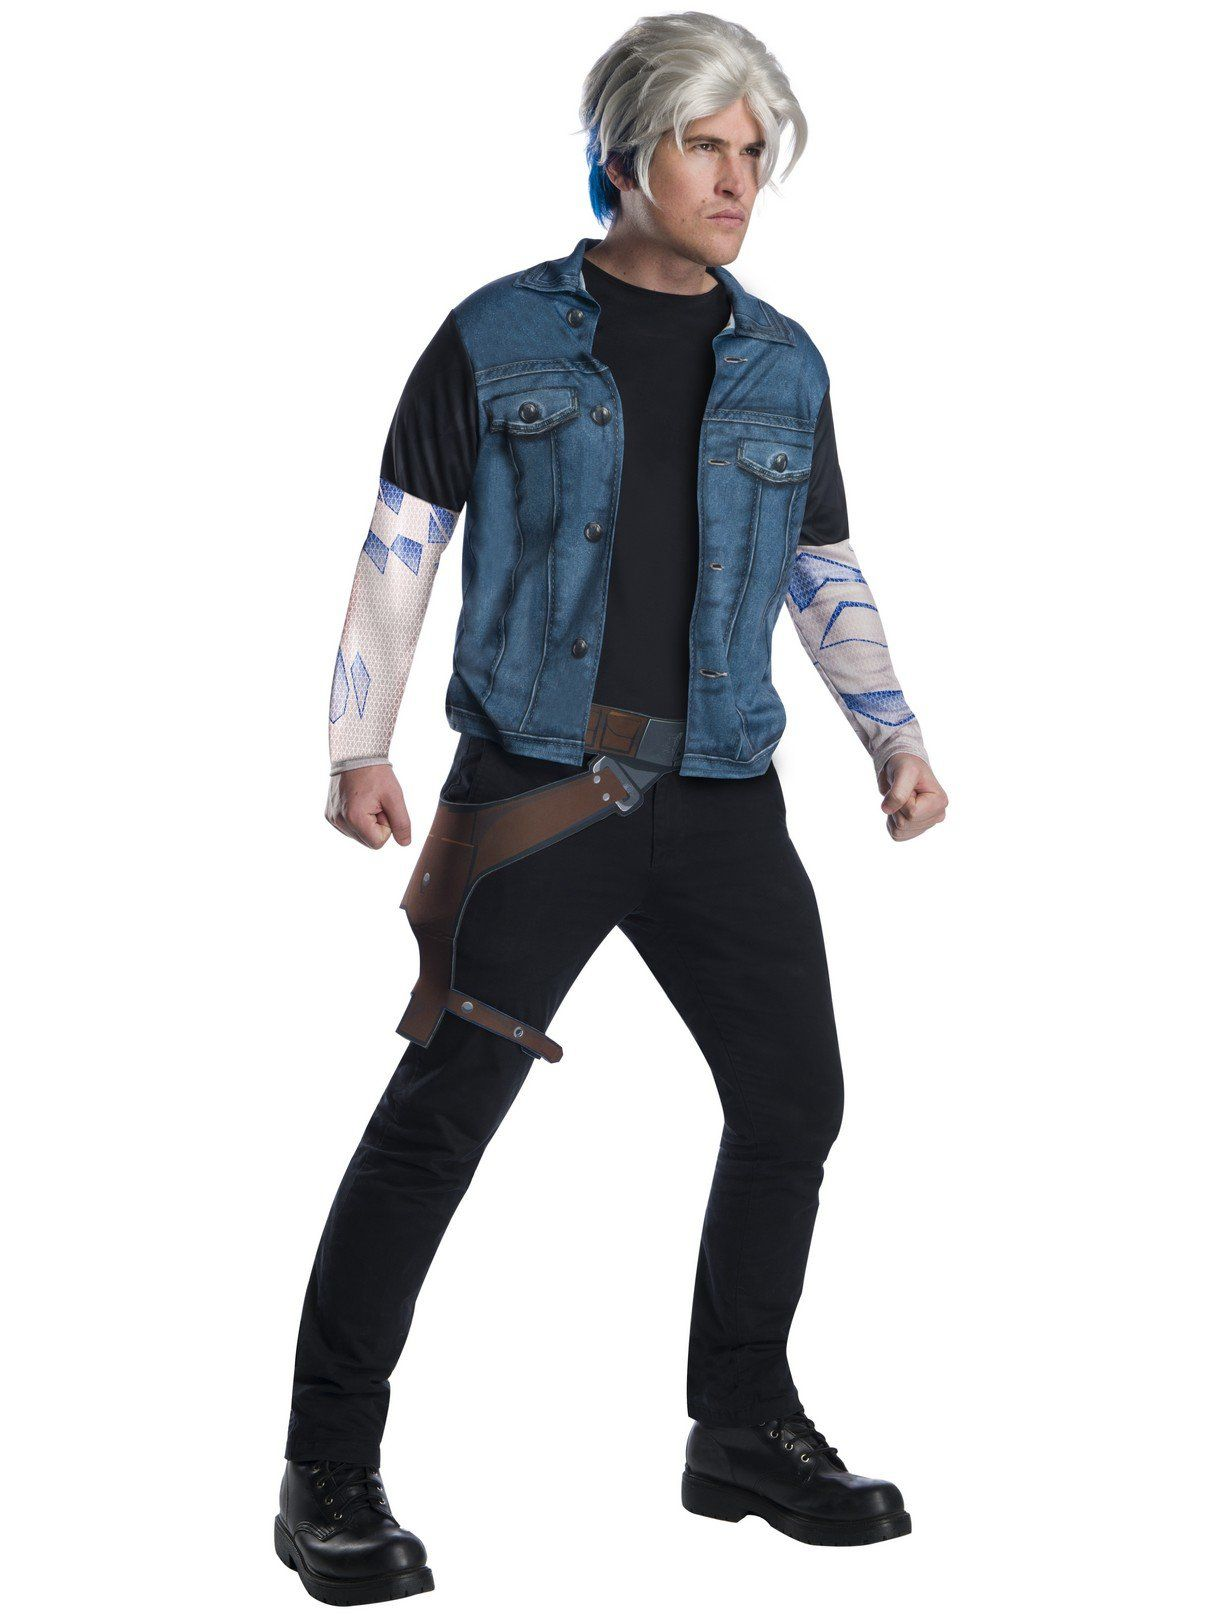 ready player one parzival costume kit for men mens costumes for